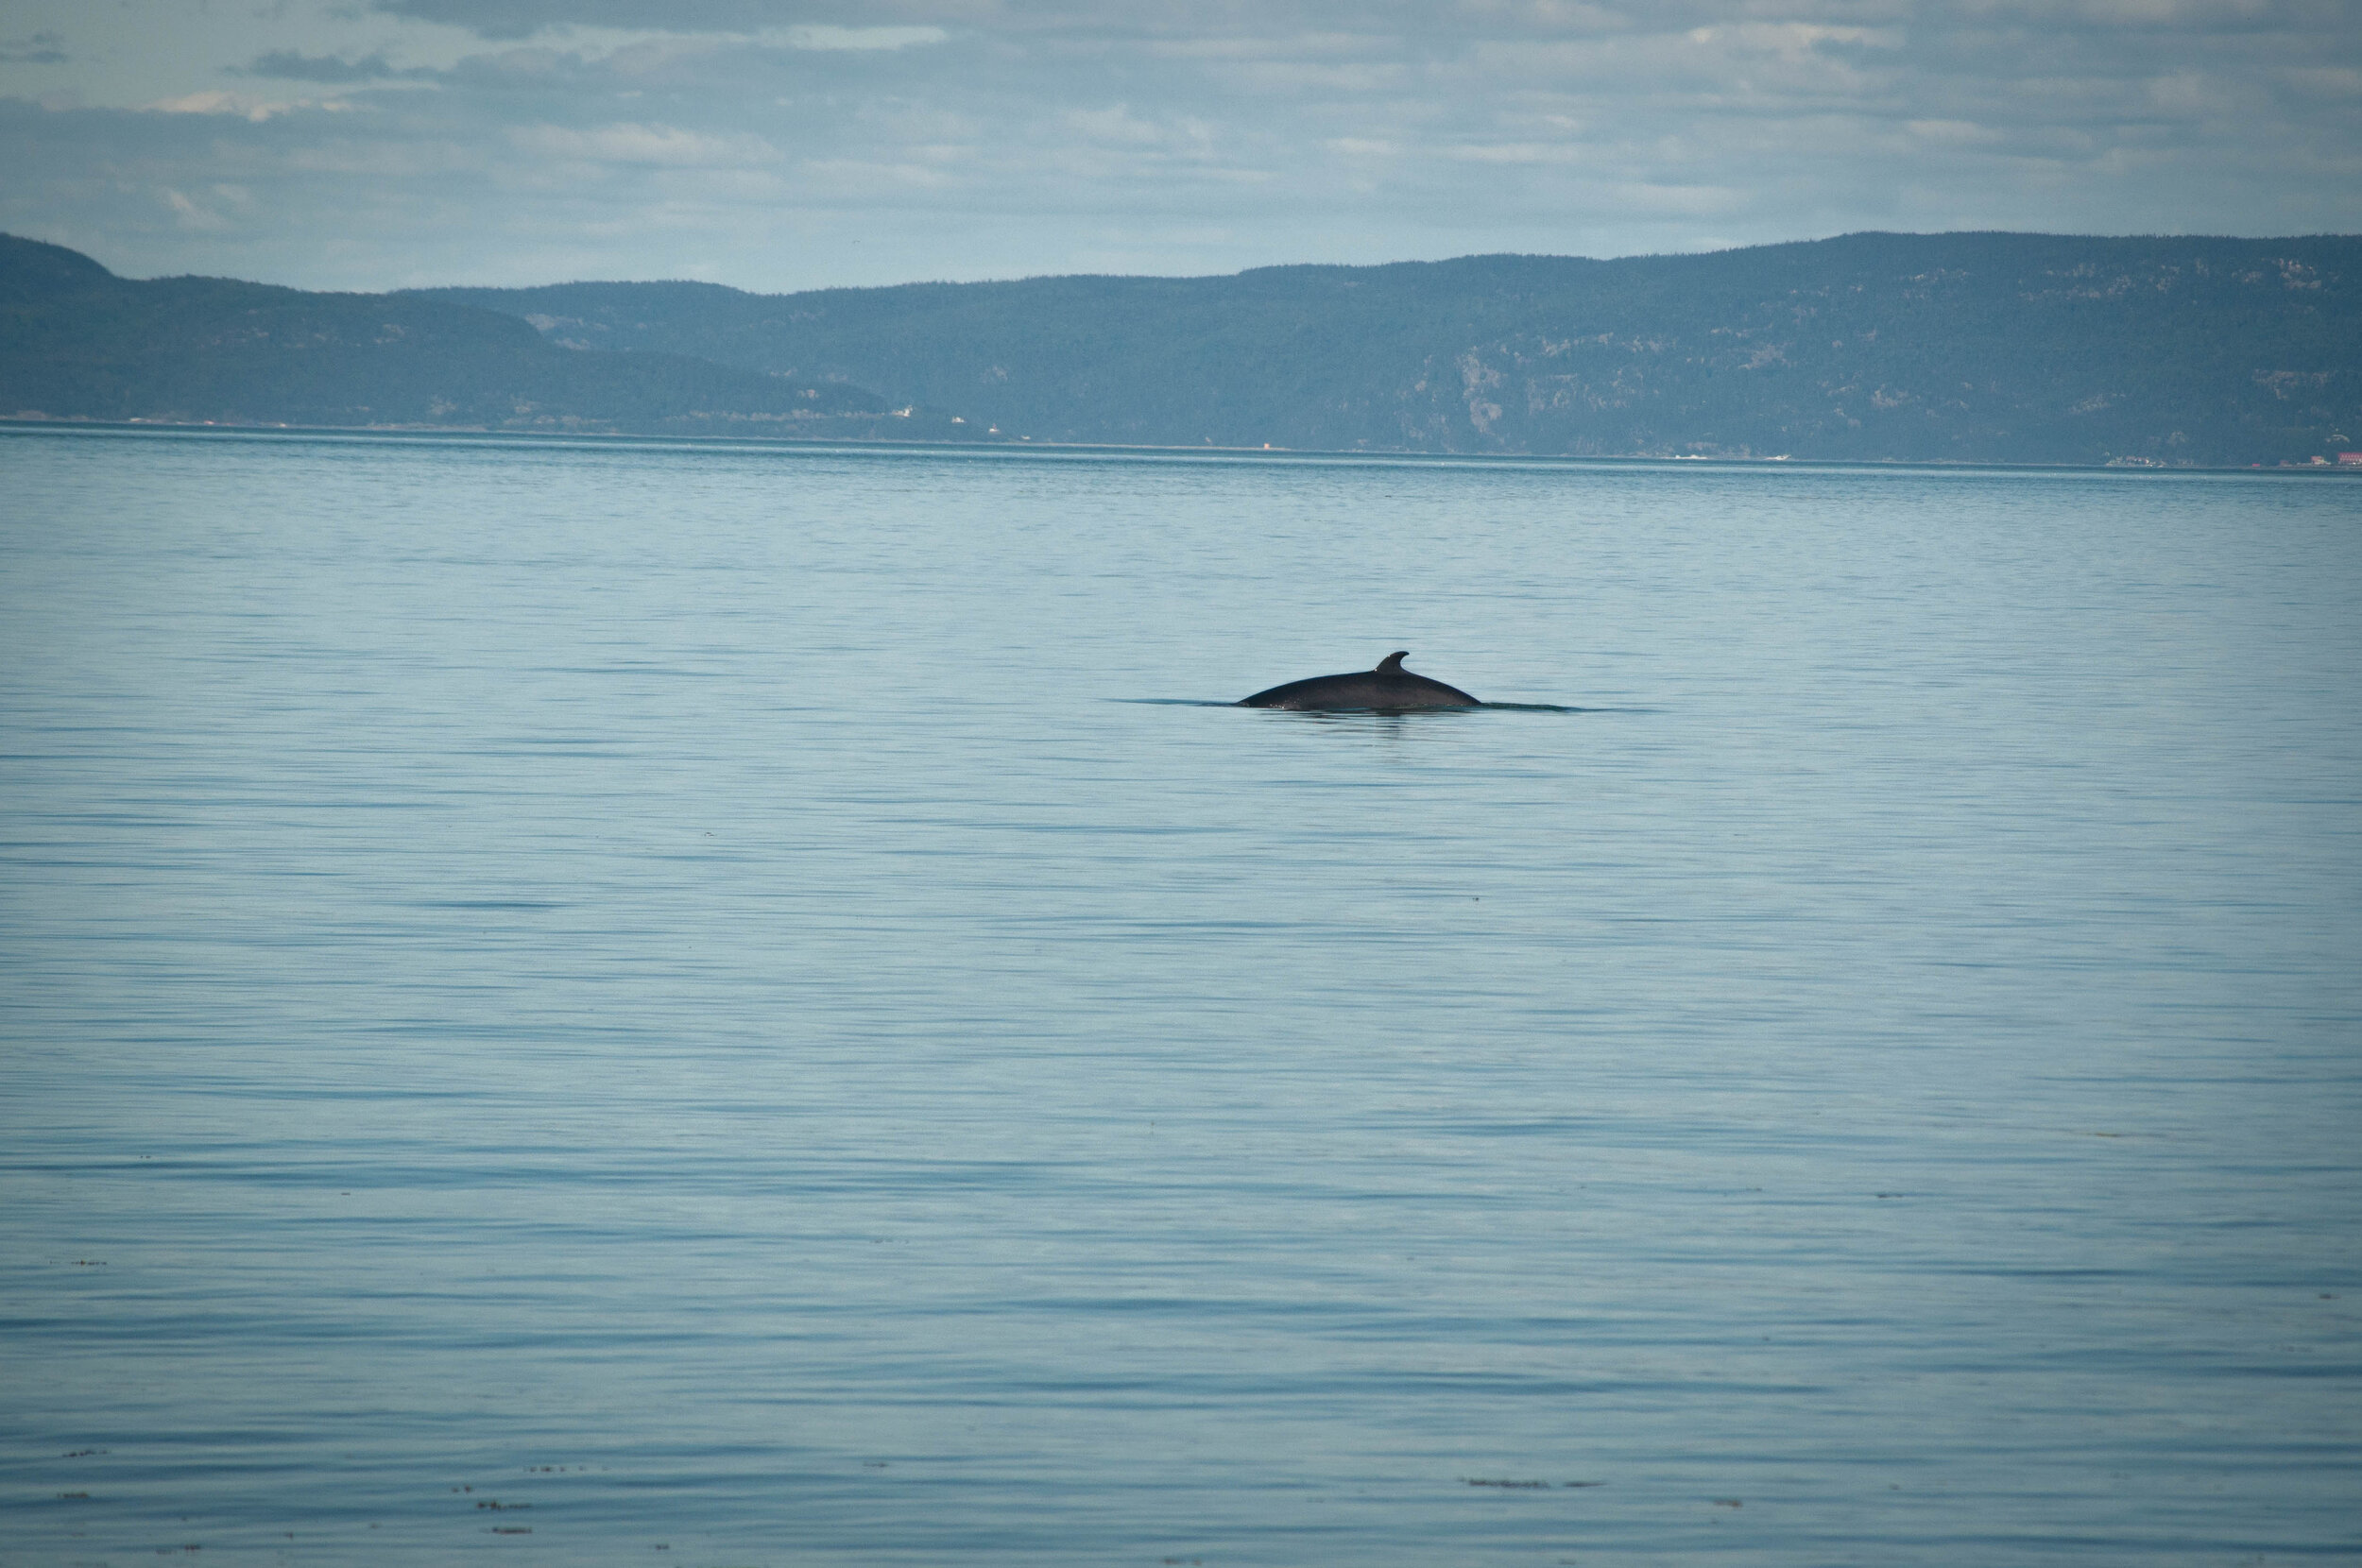 Whale in the Saint-Lawrence river near Ile Verte